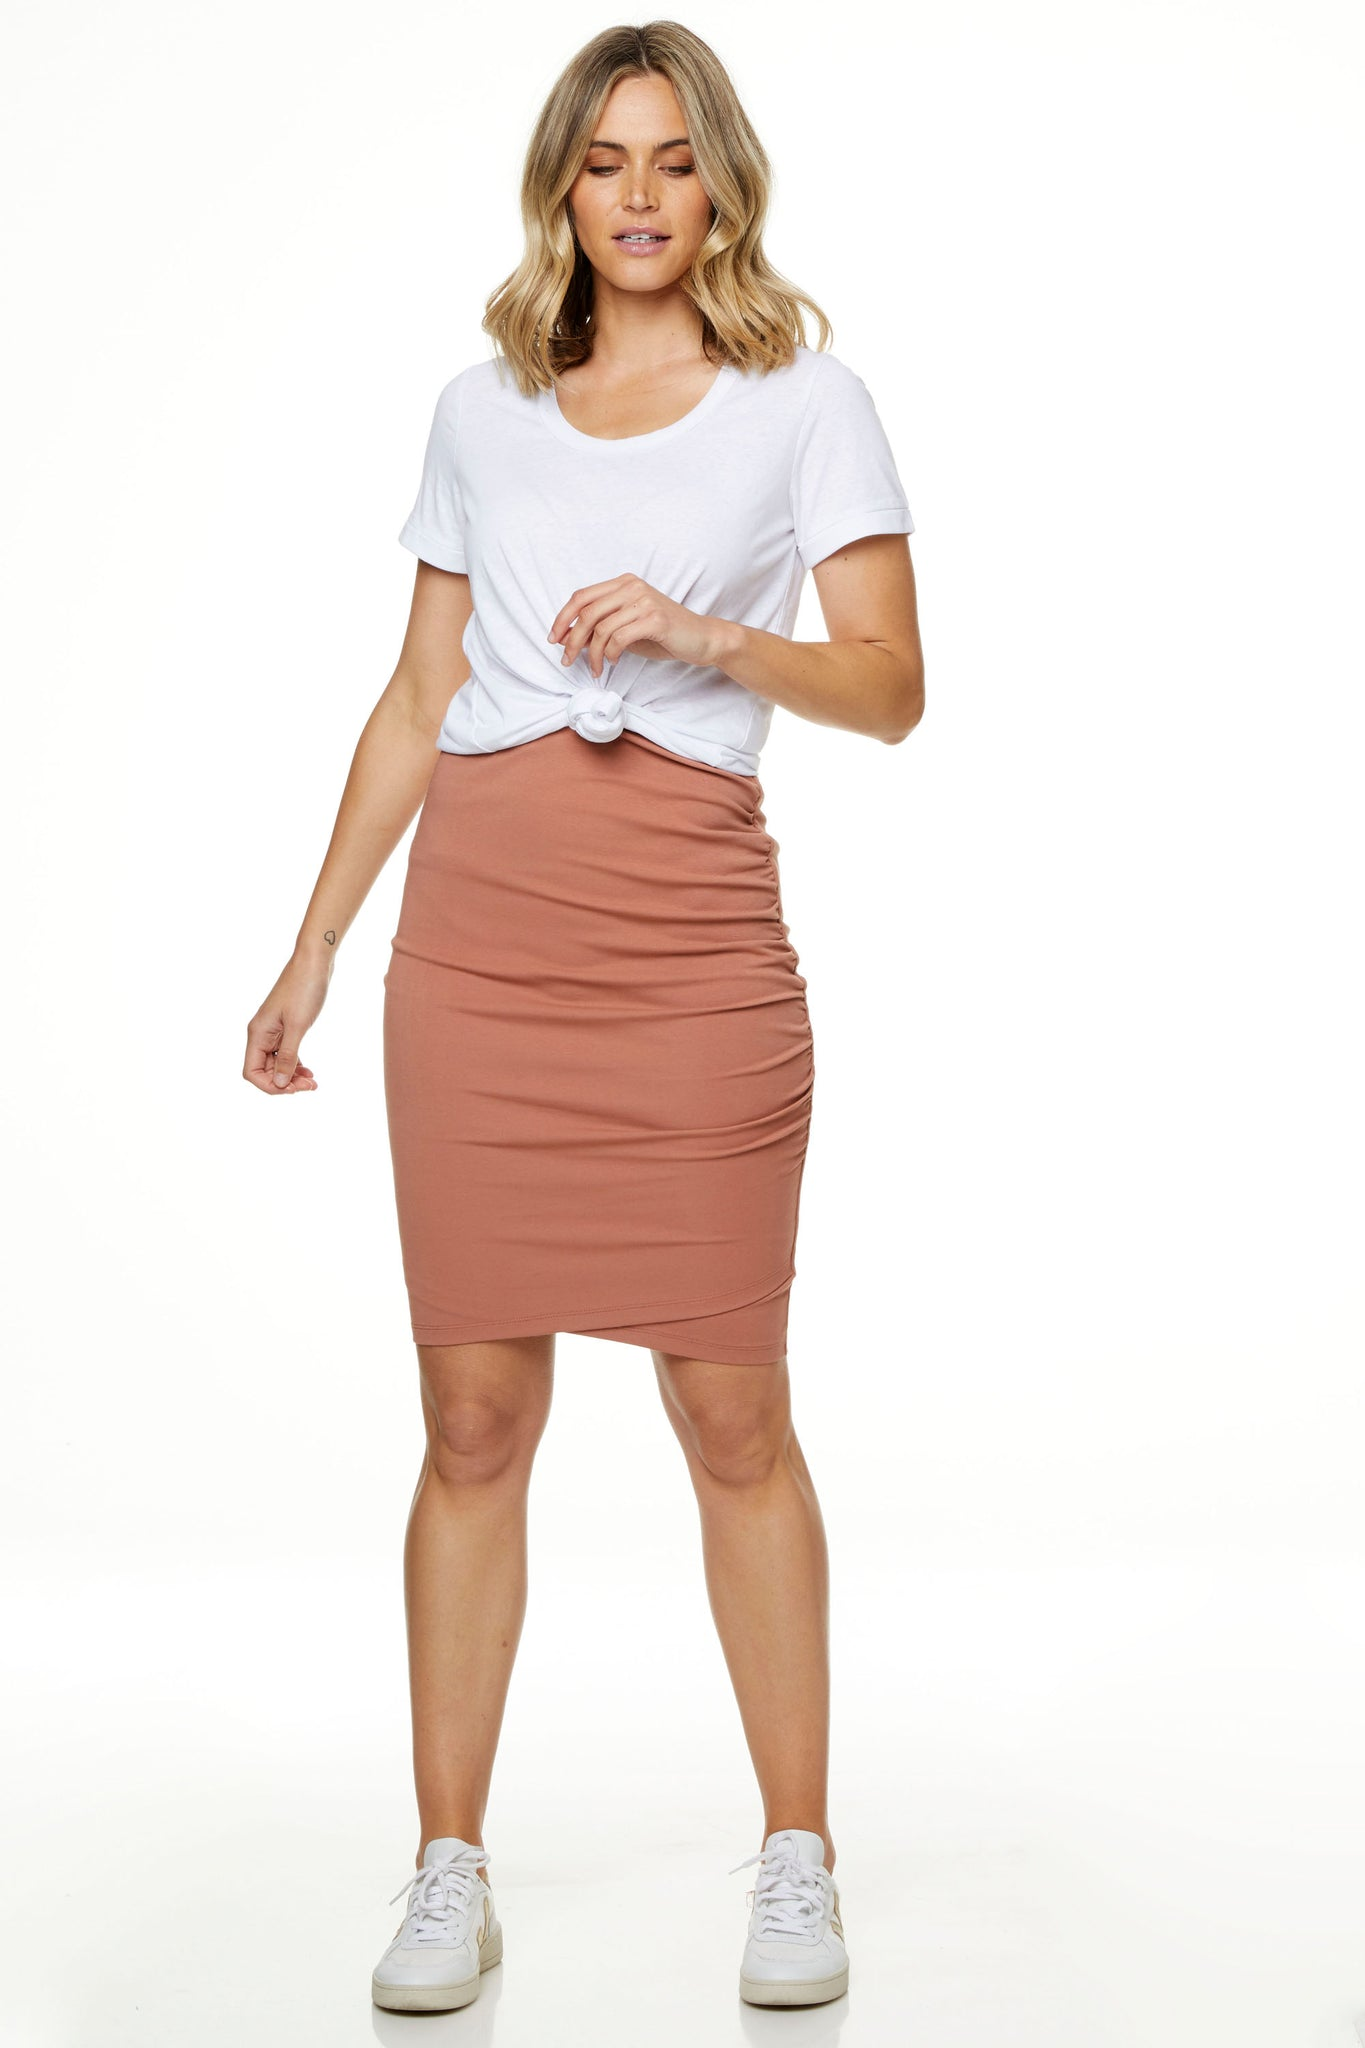 Bodycon Maternity Skirt Image 7